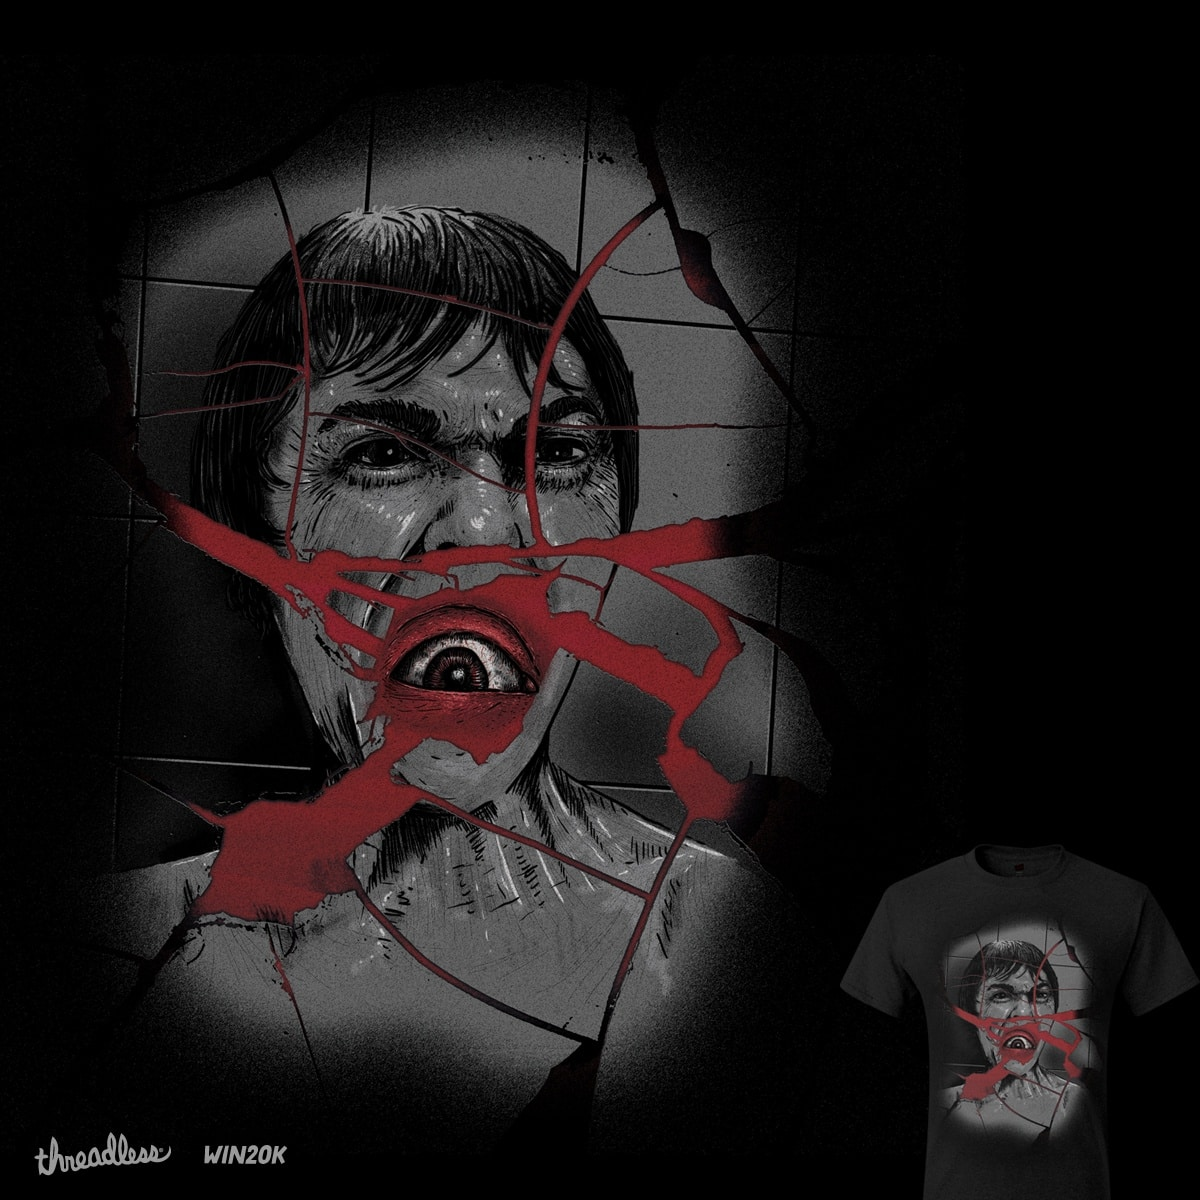 Psycho by eliude_valverde on Threadless